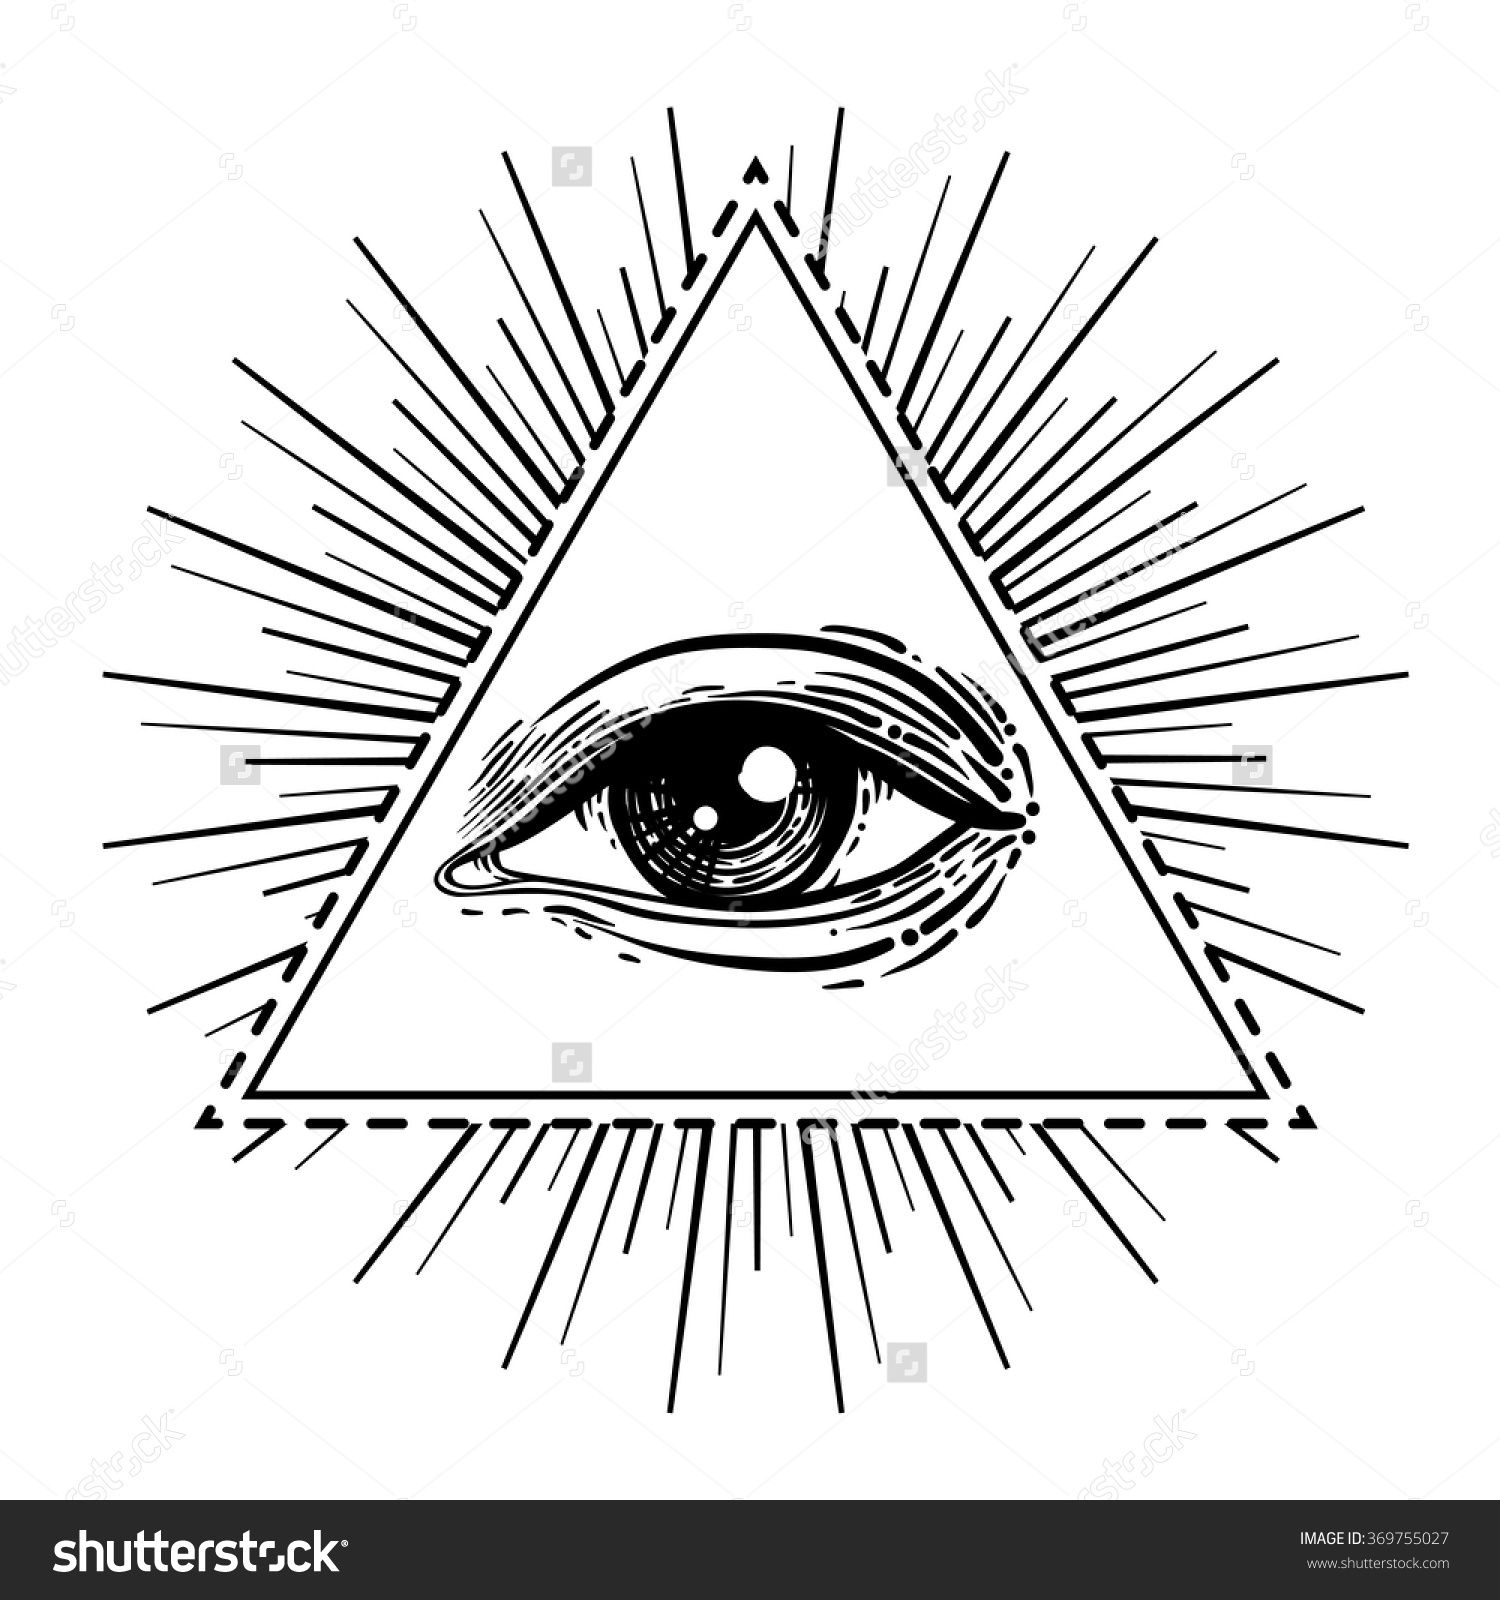 Drawn symbol eye  seeing Providence New All